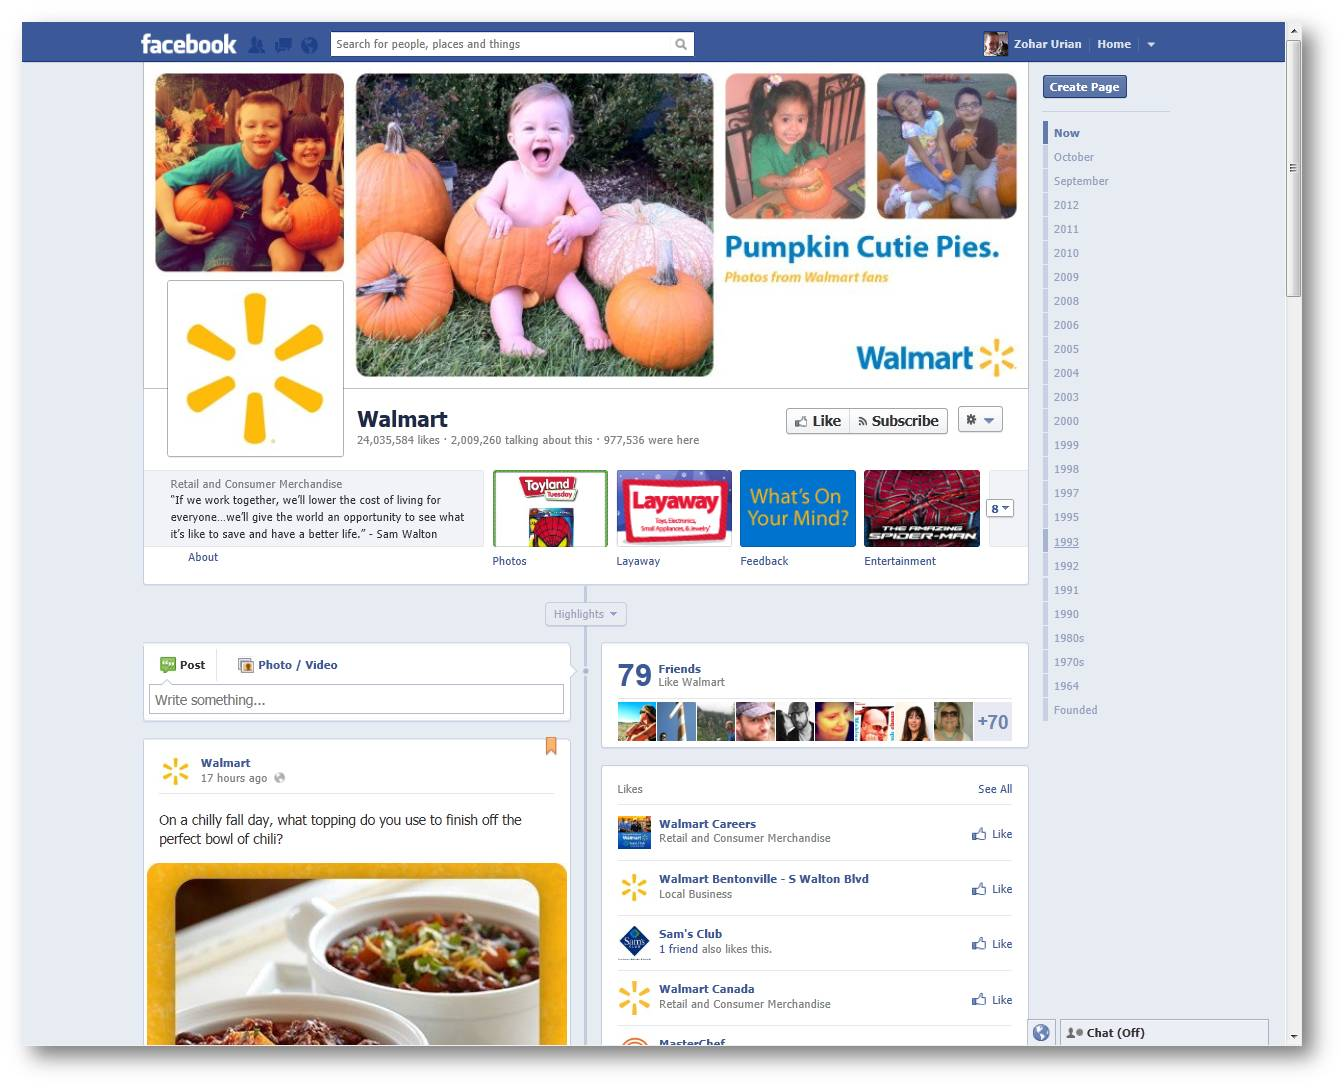 walmart 2003 marketing case study The smiley face is gone forever, but cmo stephen quinn says that wal-mart is constantly tuning its marketing stragegy according to the data it collects on it.